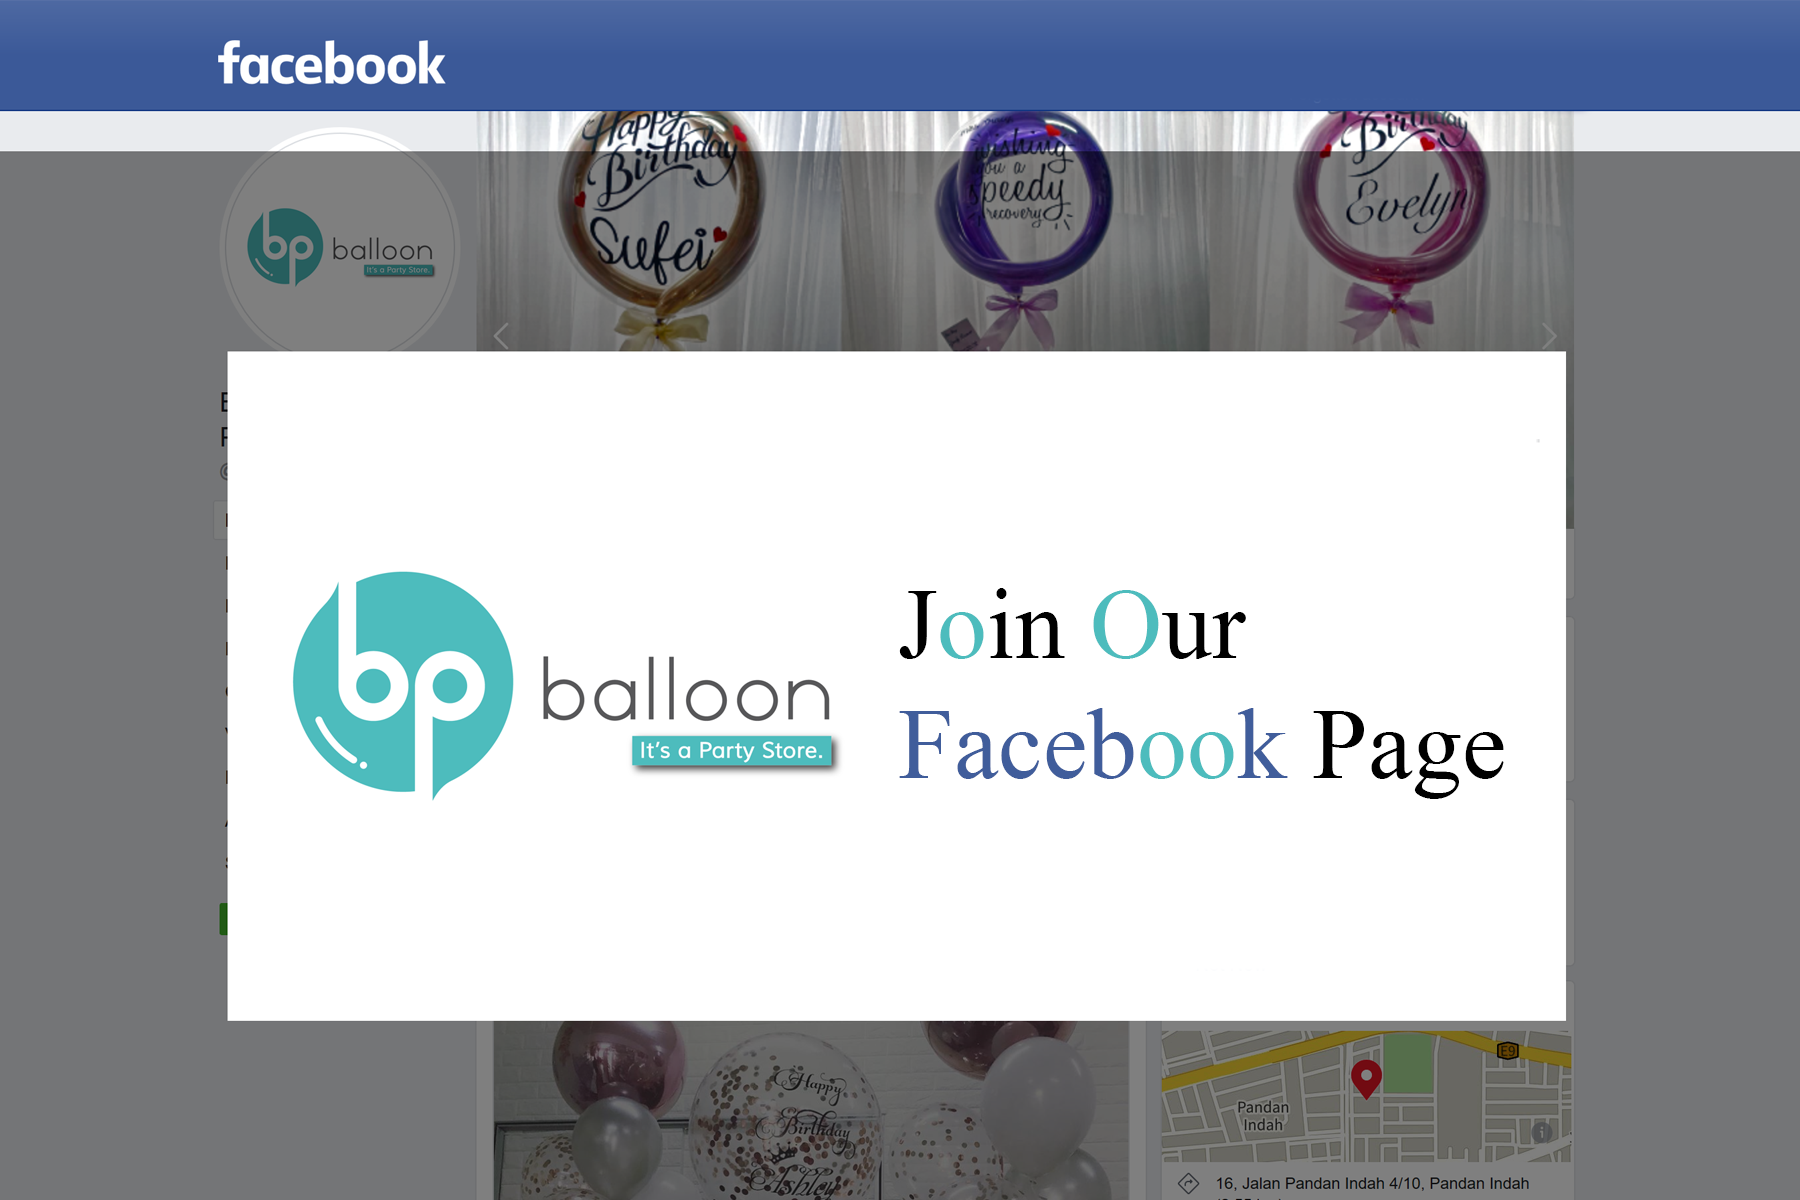 BP Balloon & Gifts | Join our Facebook Page